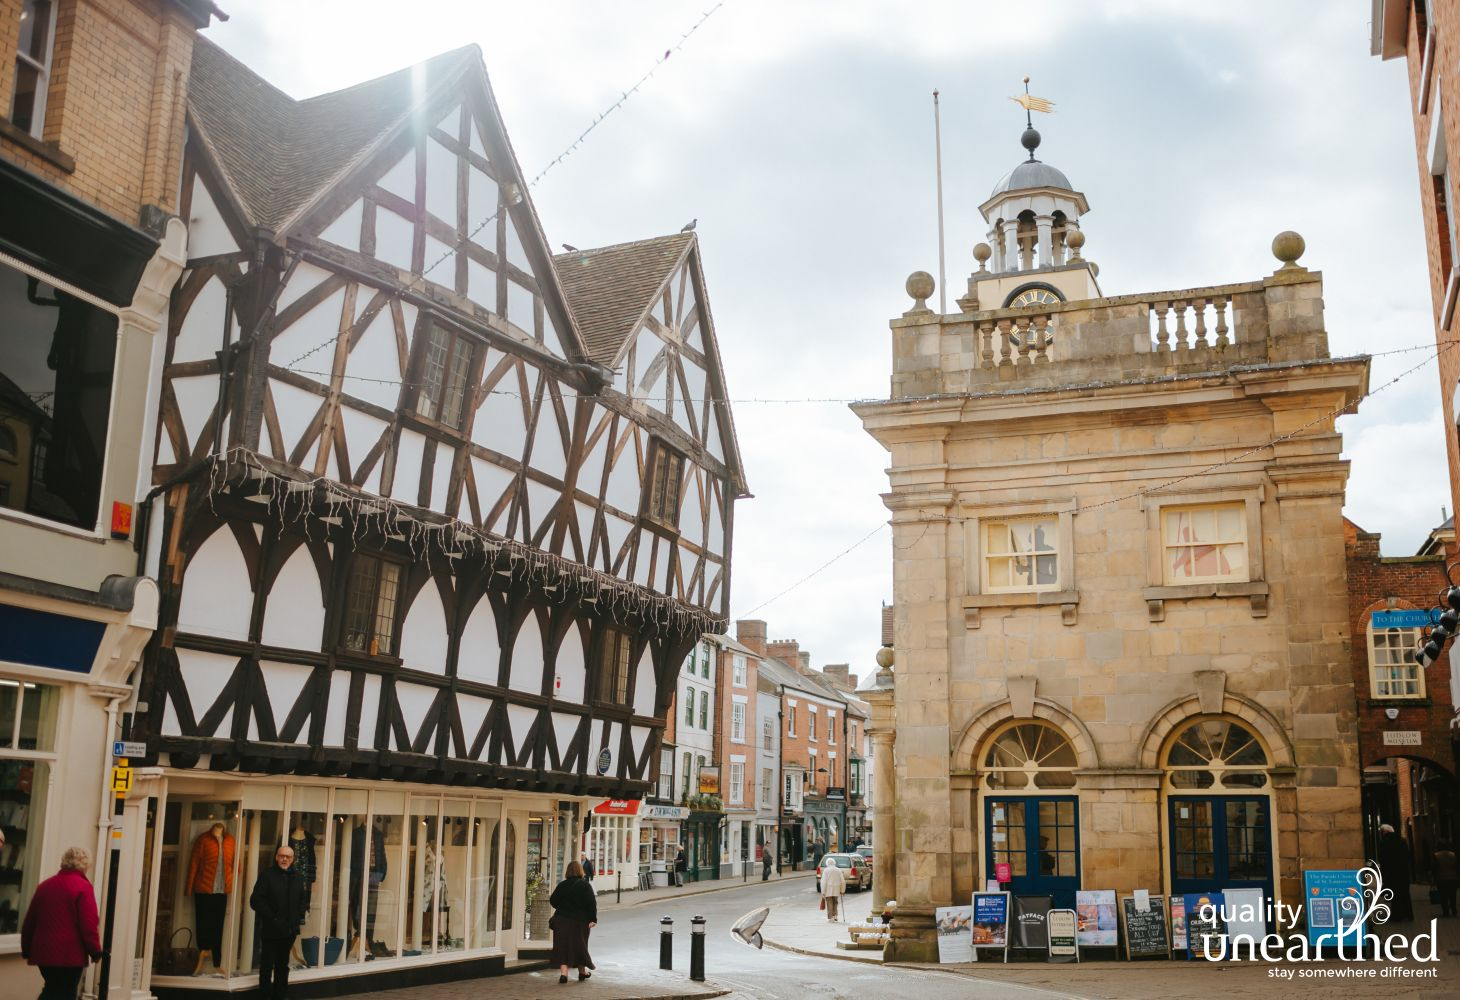 The High street in Ludlow shows why it is one of the most picturesque market towns in England